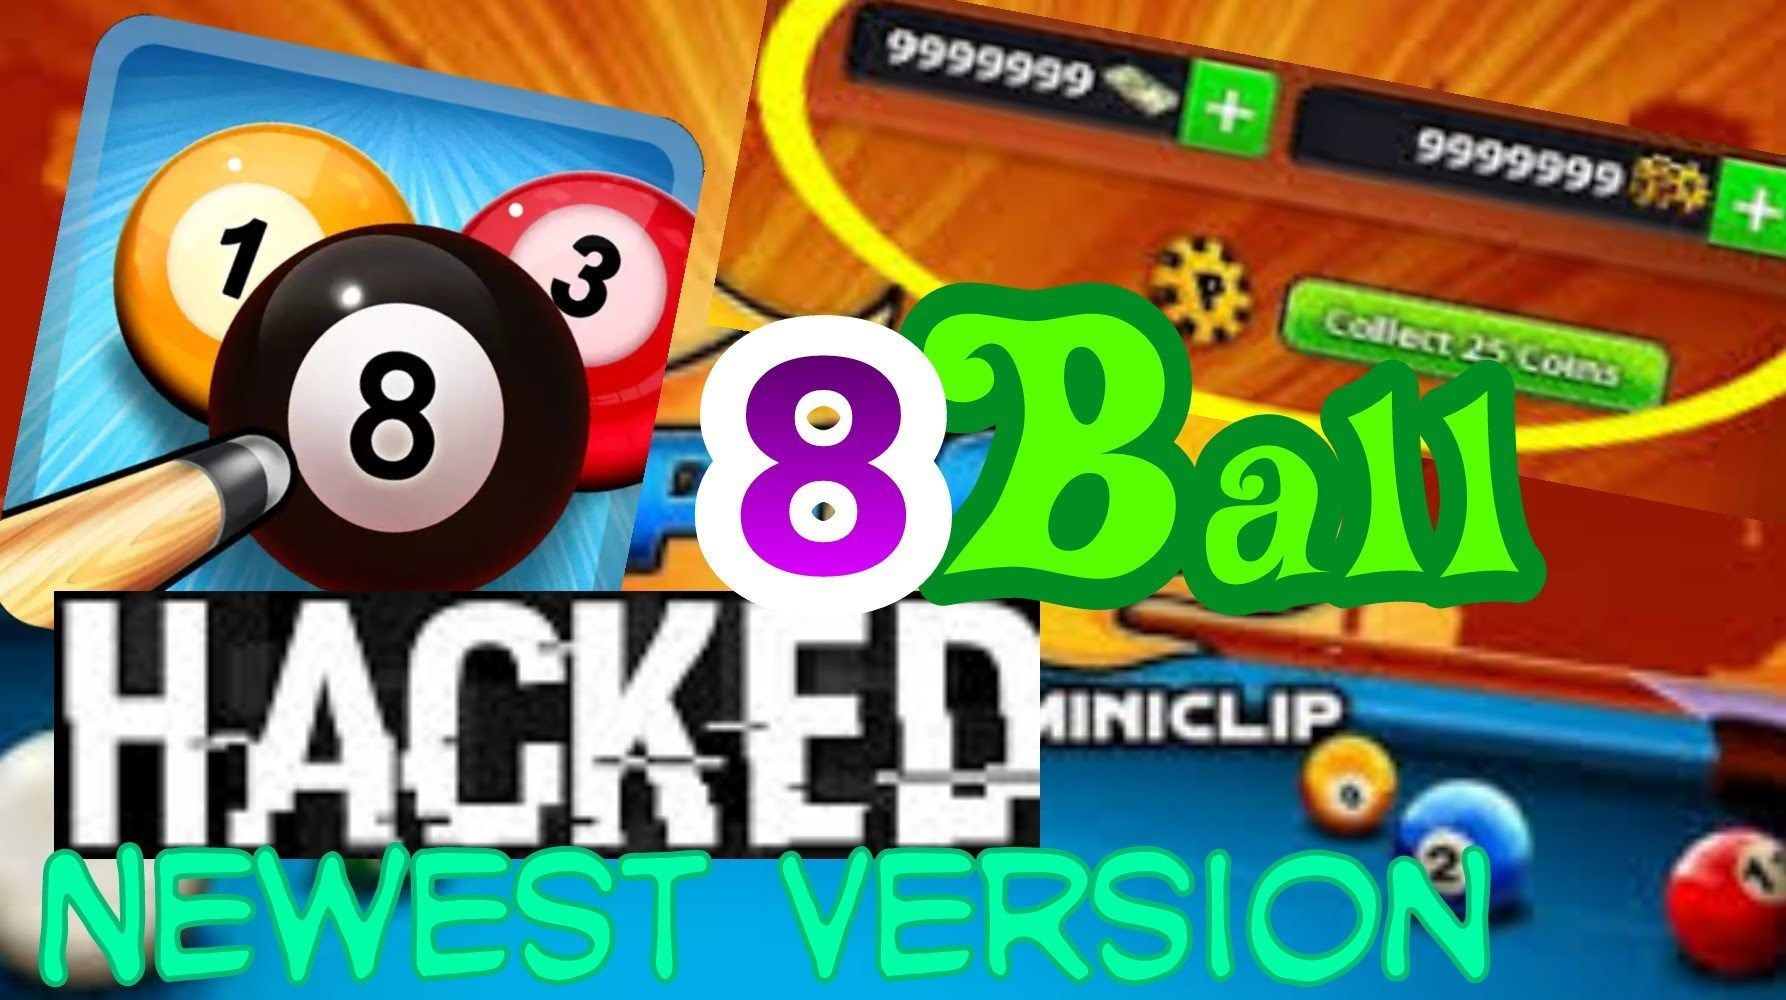 8 ball pool mod apk for android antiban direct download